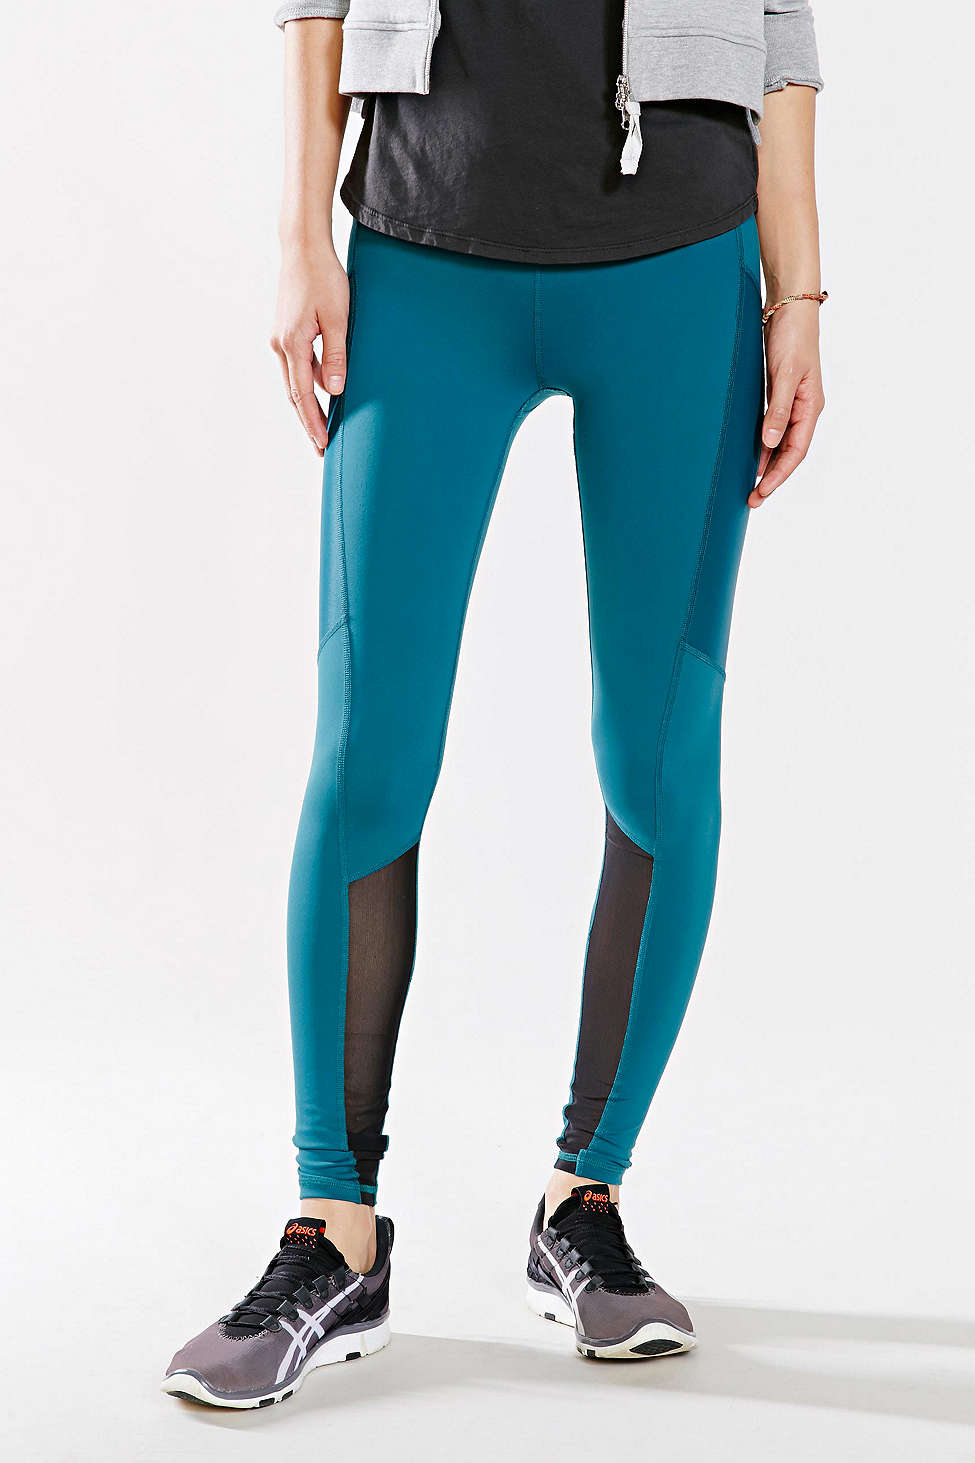 Alo Yoga Swift Legging